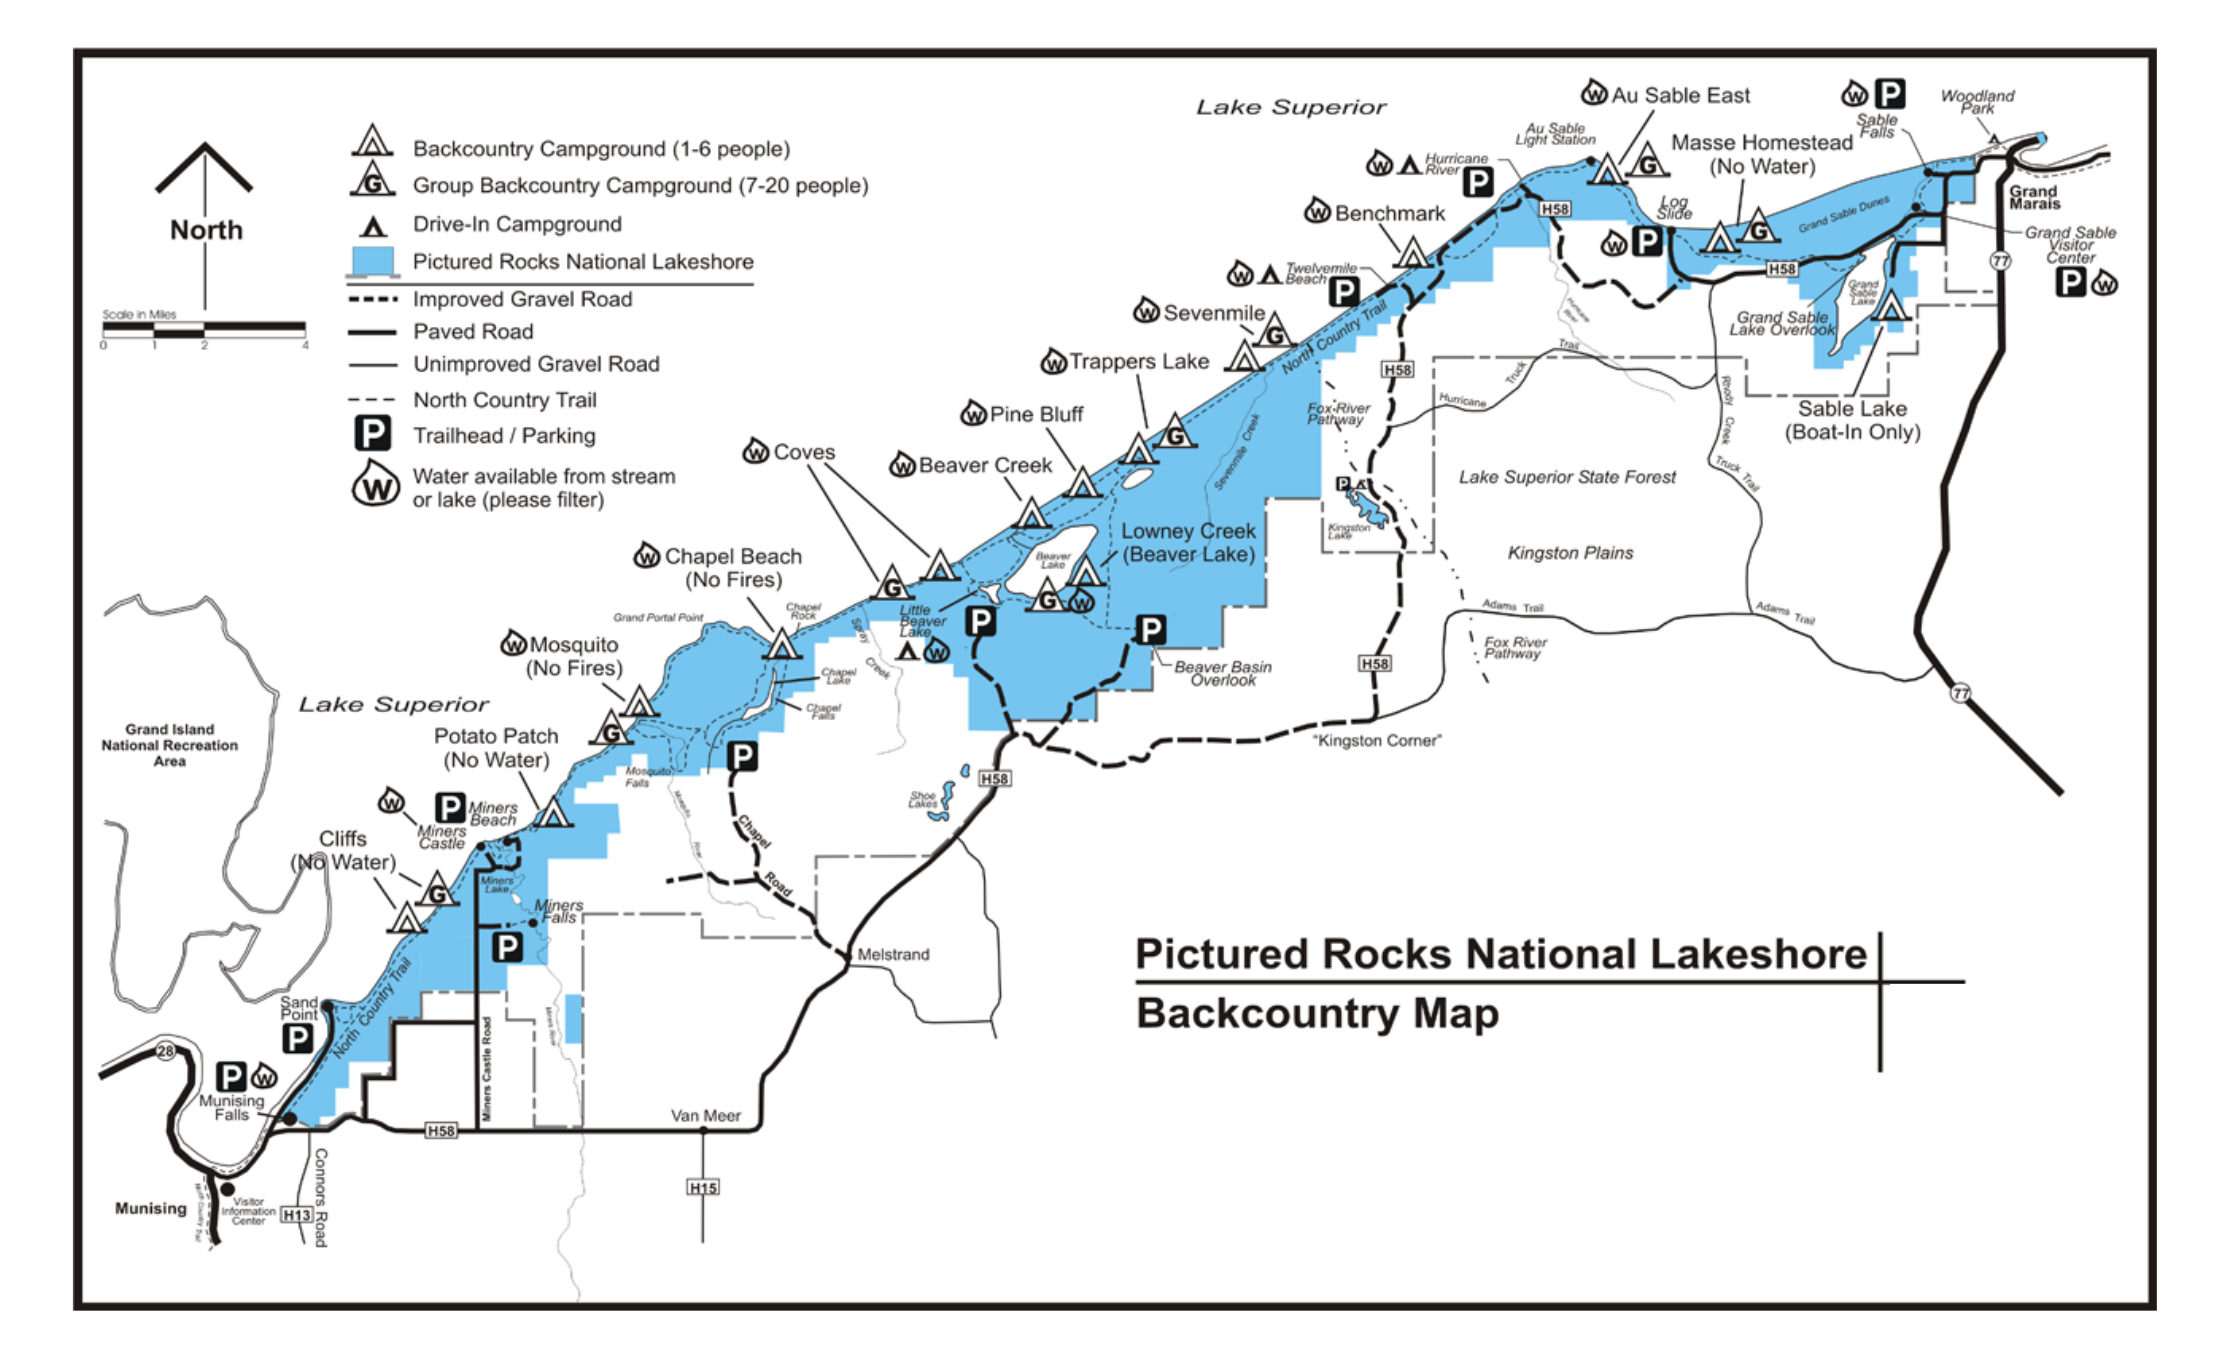 Pictured Rocks Maps NPMapscom just free maps period